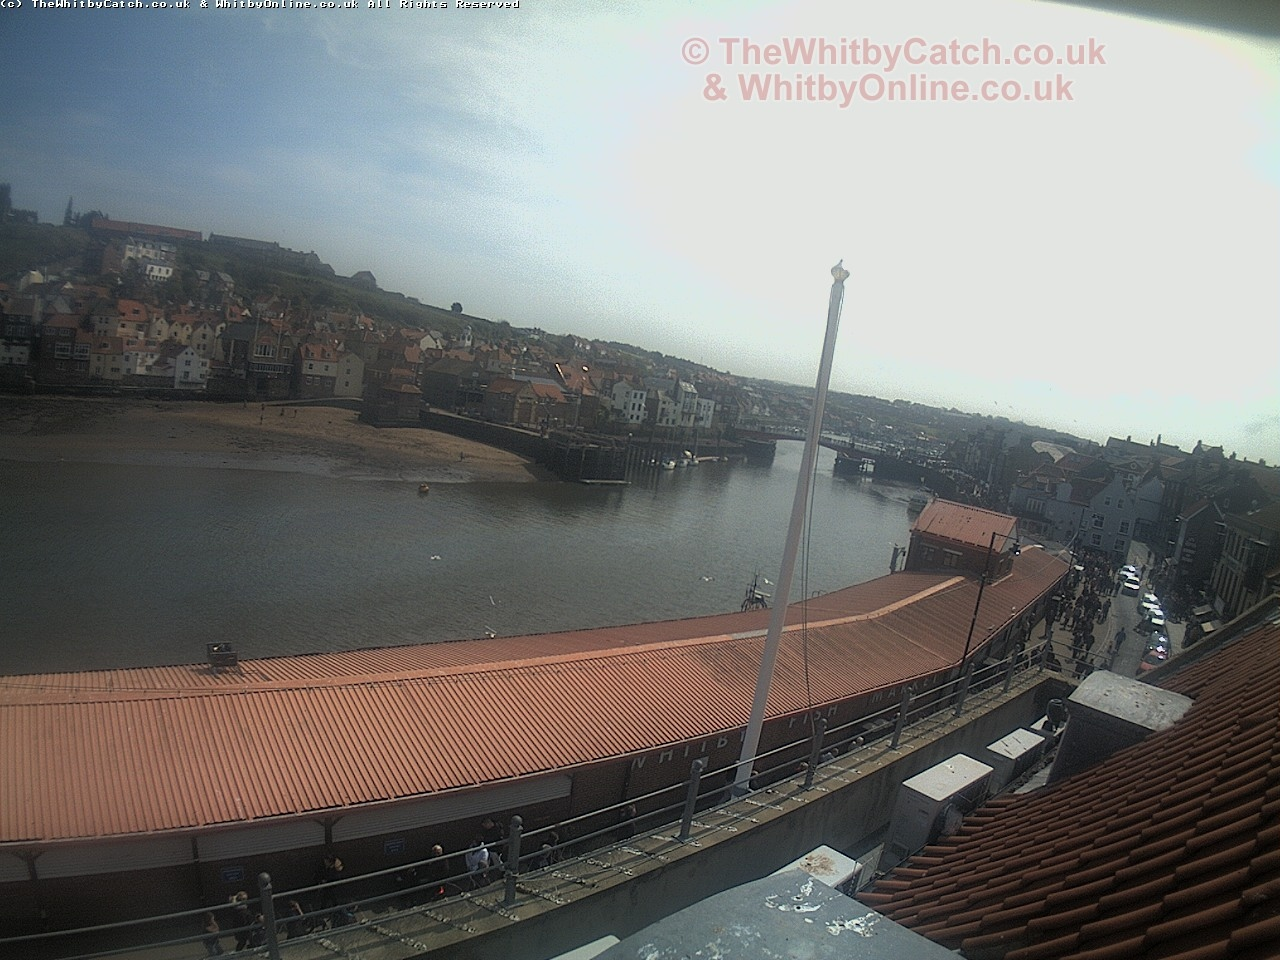 Whitby Sun 30th April 2017 13:10.